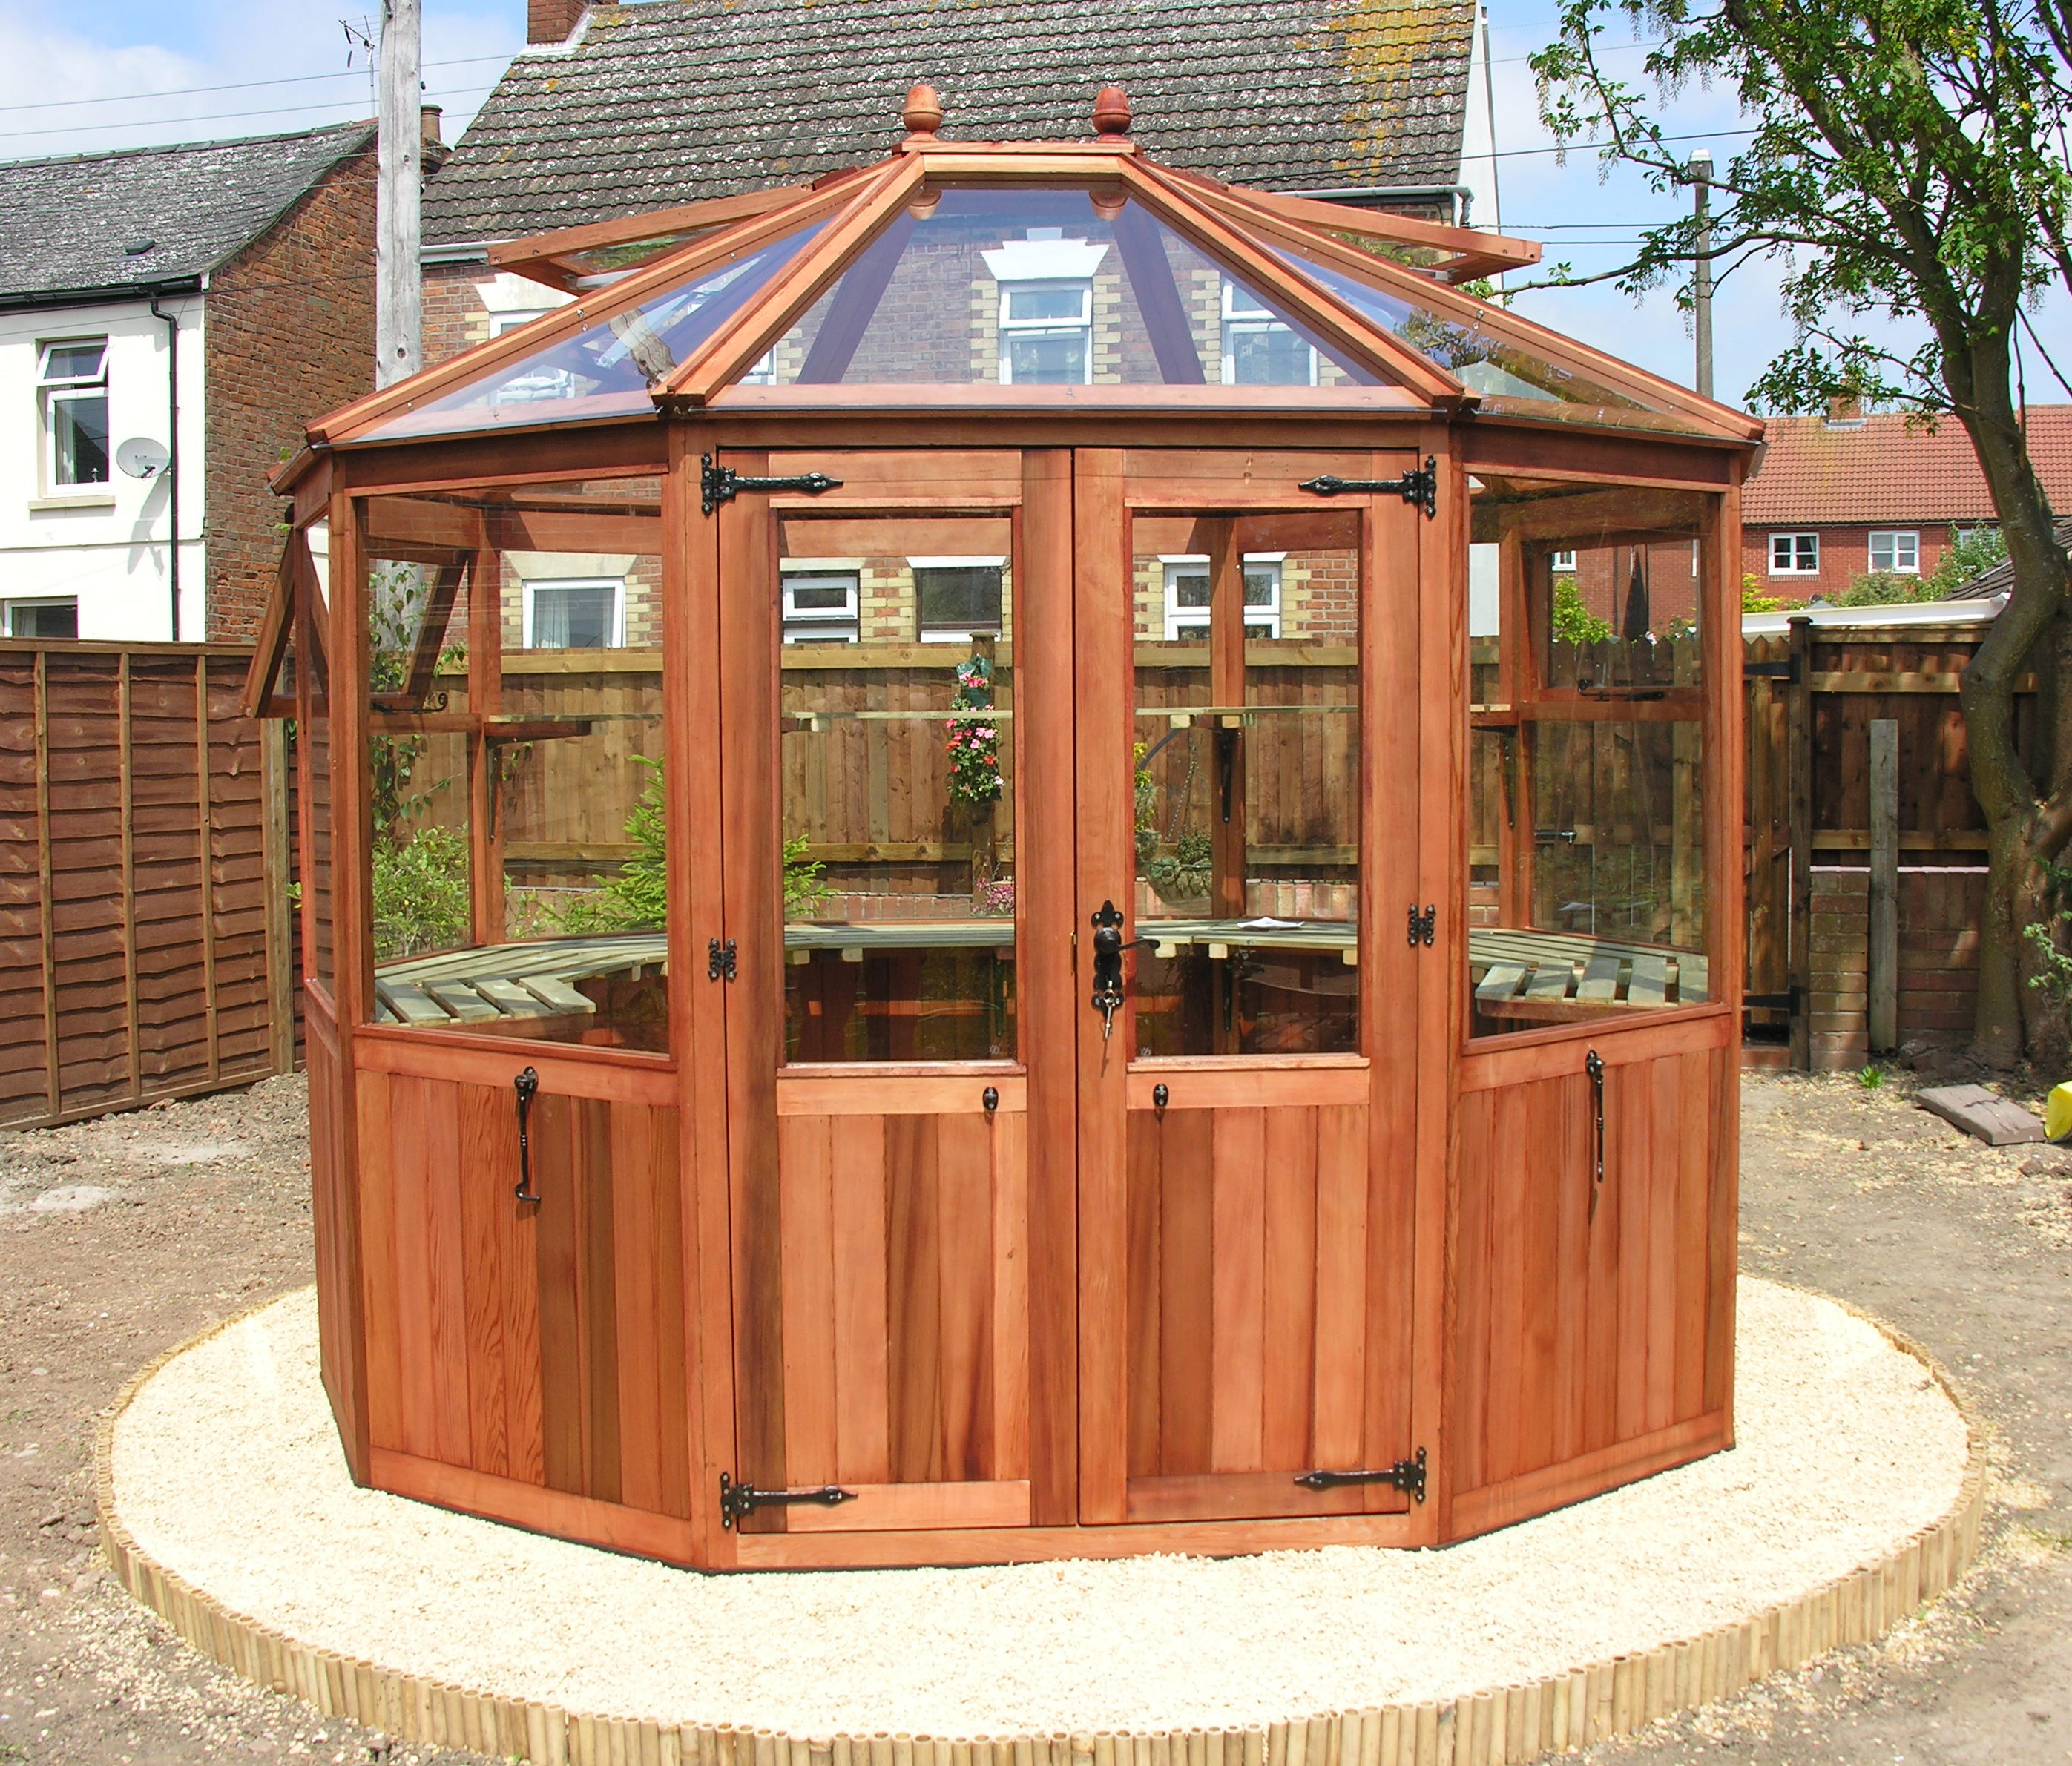 Loxley woodpecker joinery uk ltd for Octagonal greenhouse plans